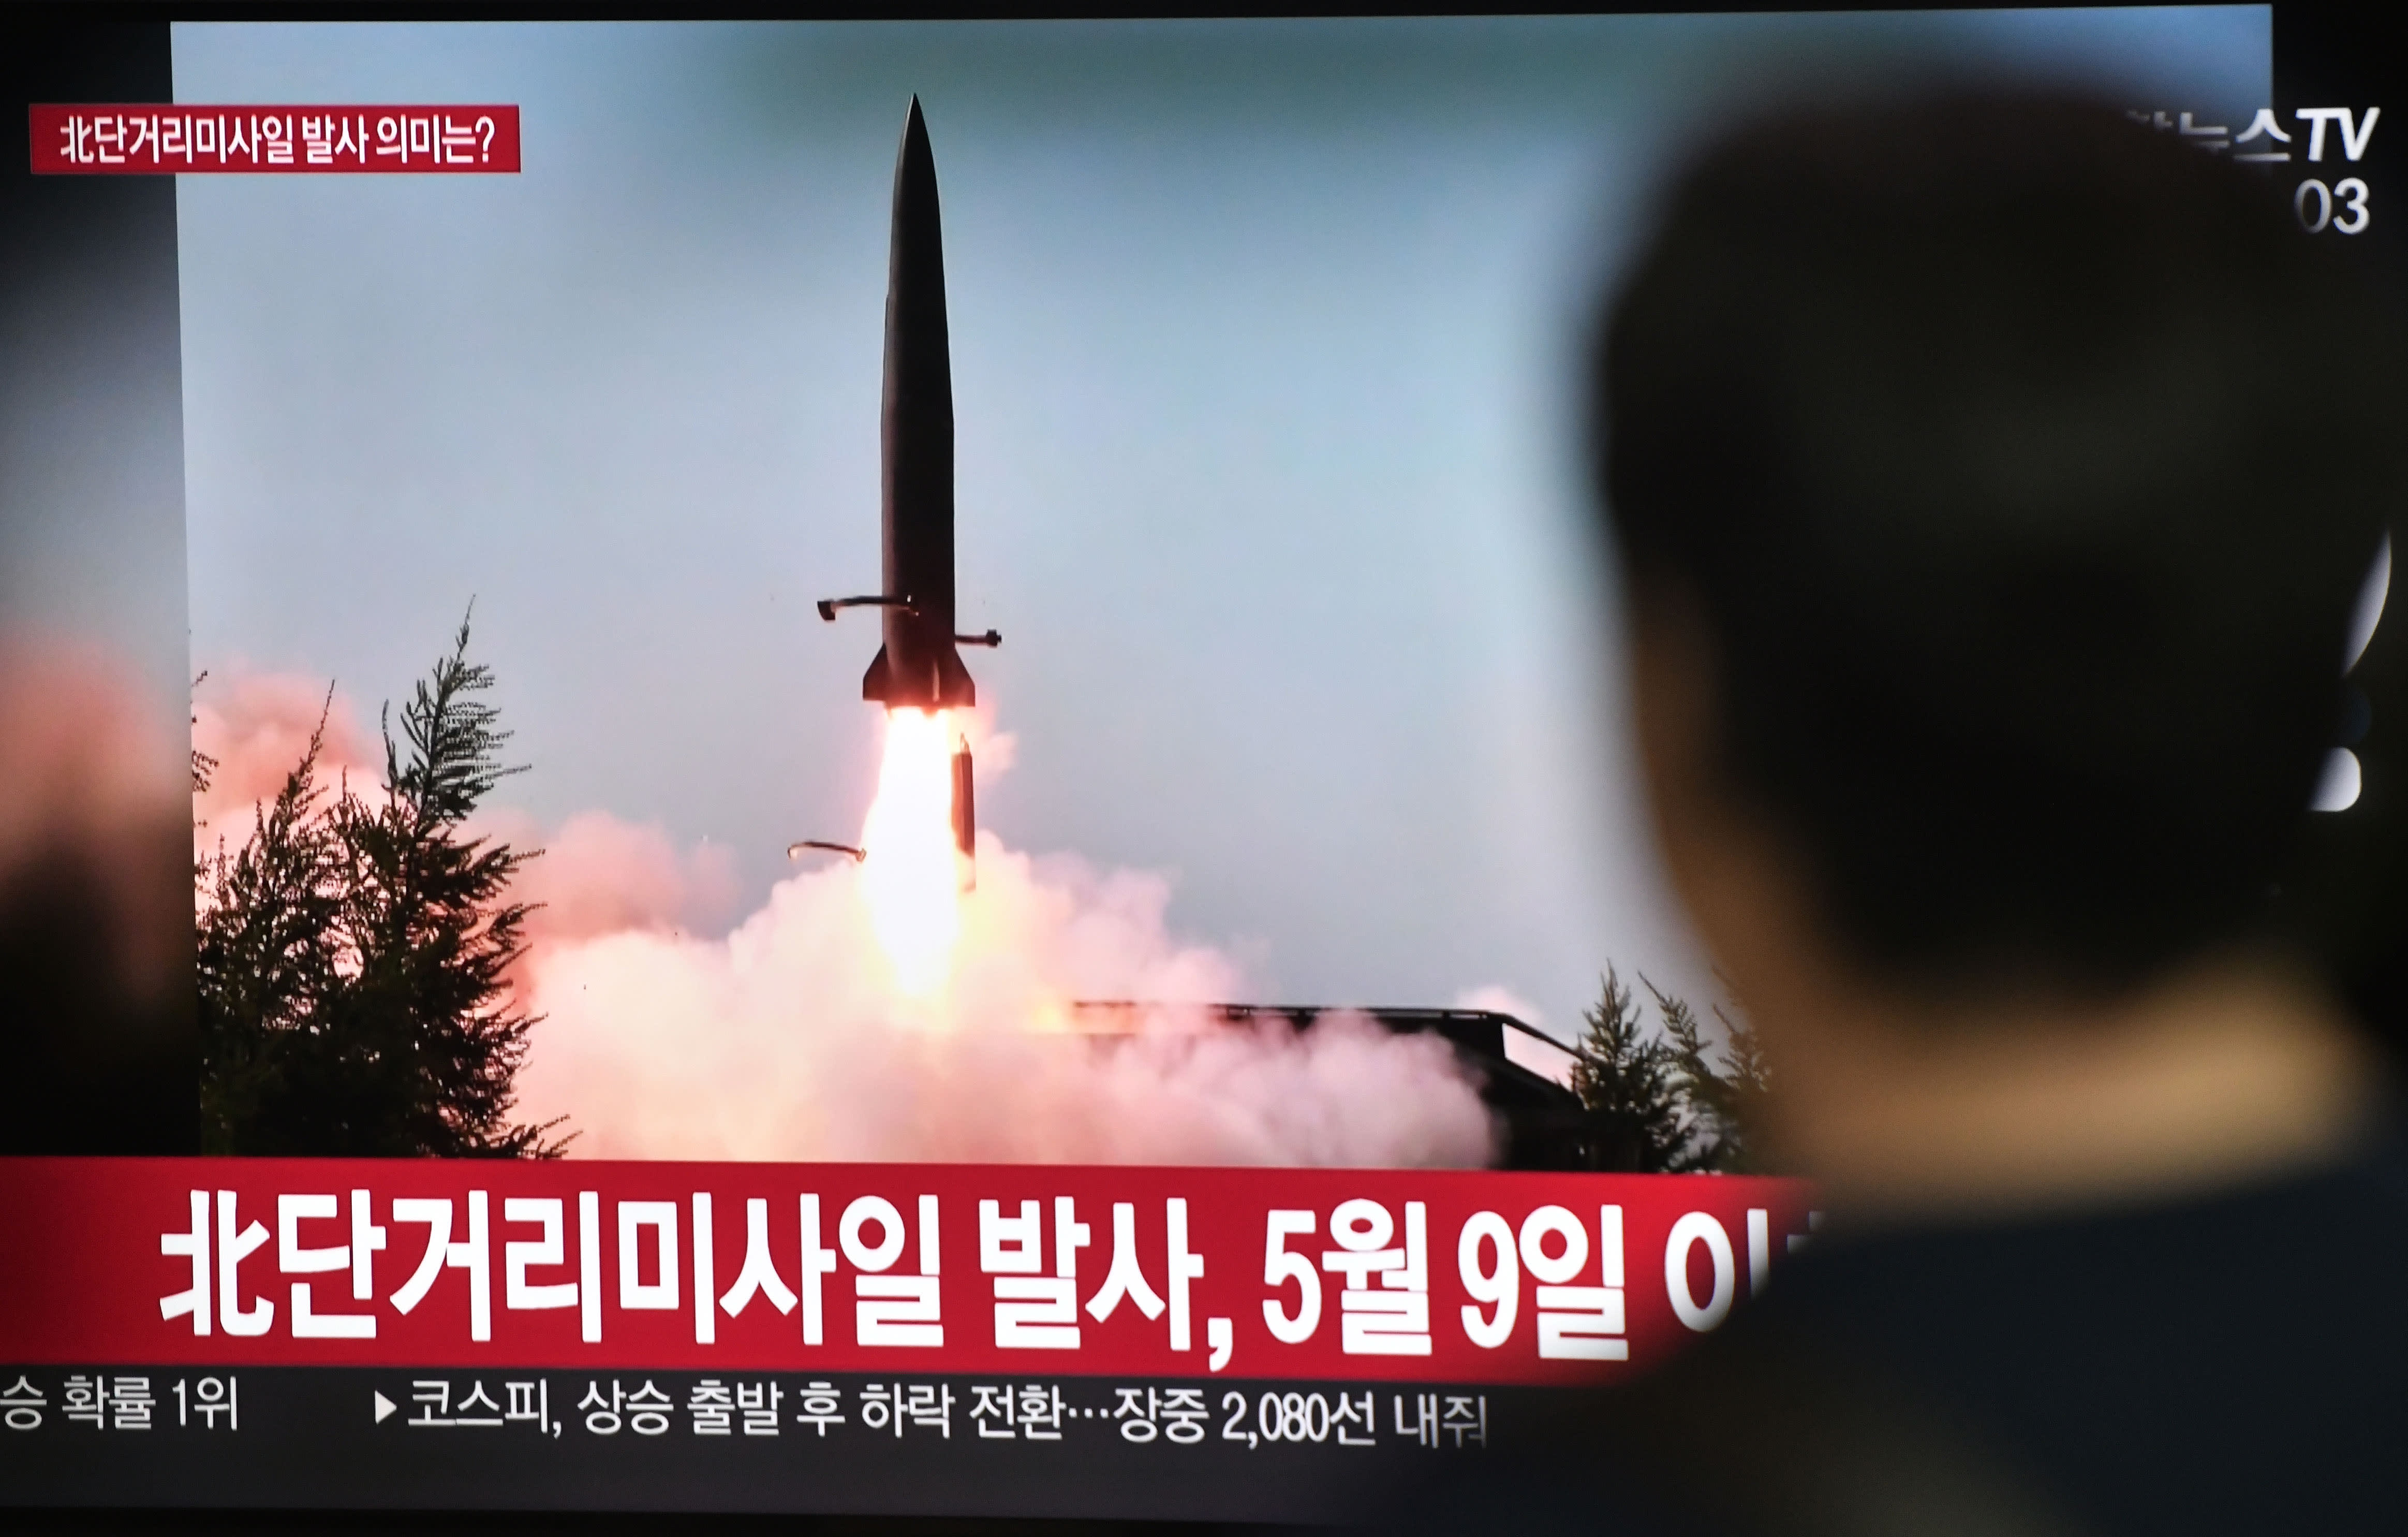 North Korea's Kim says missile launch is a warning to South Korean 'warmongers'